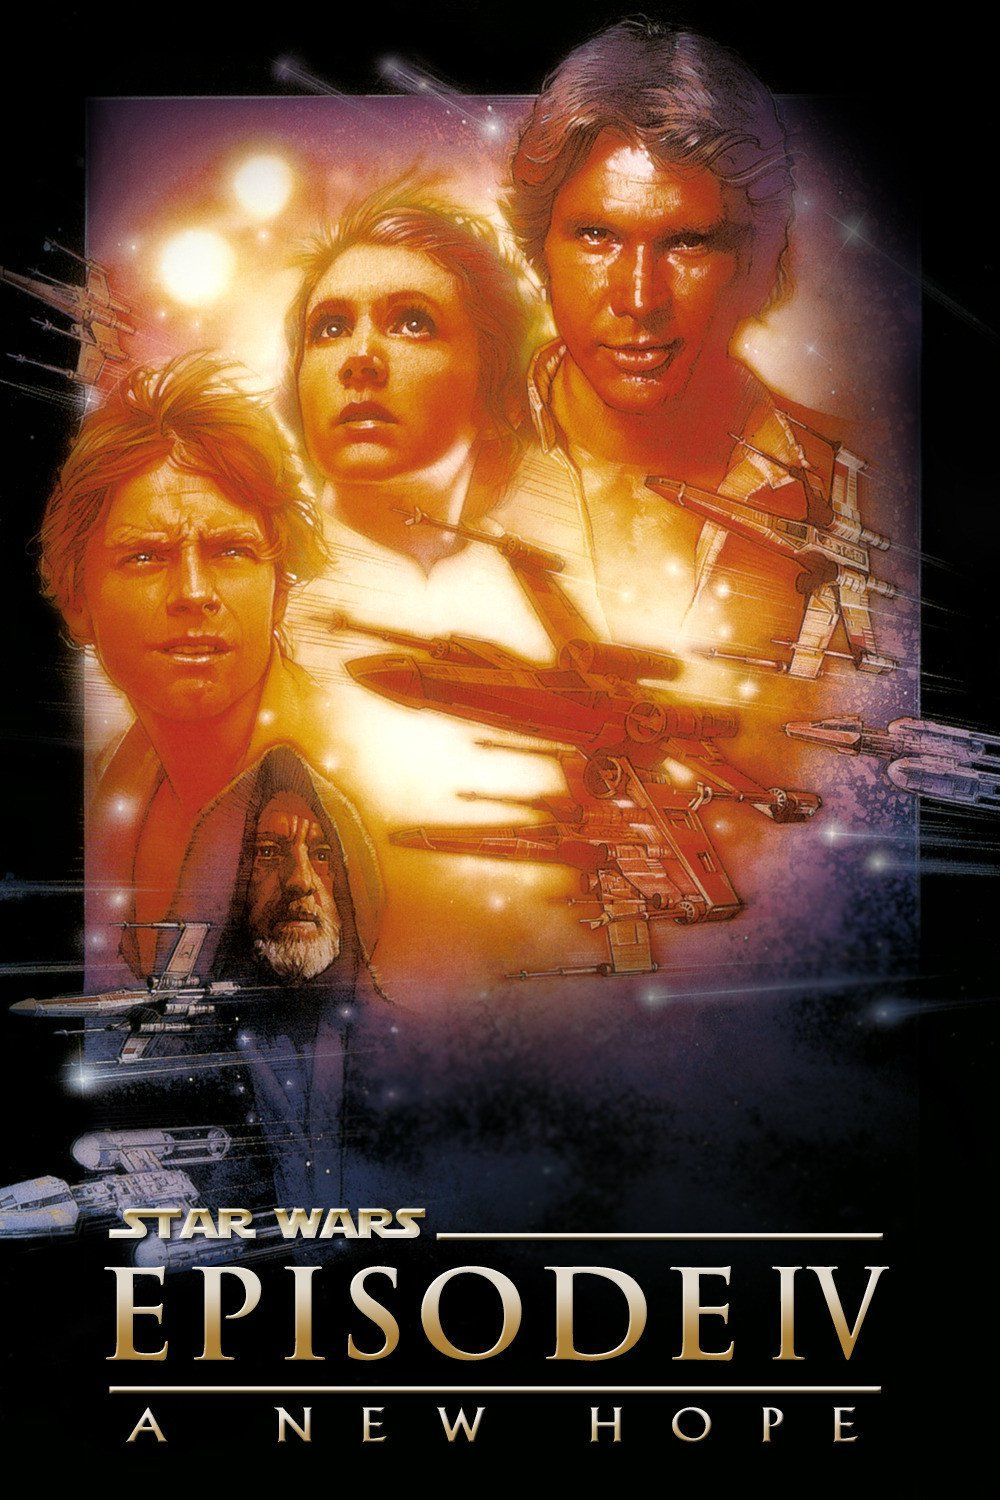 Star Wars Episode Iv A New Hope 1977 Sci Fi Action Star Wars Poster Star Wars Watch Star Wars Online